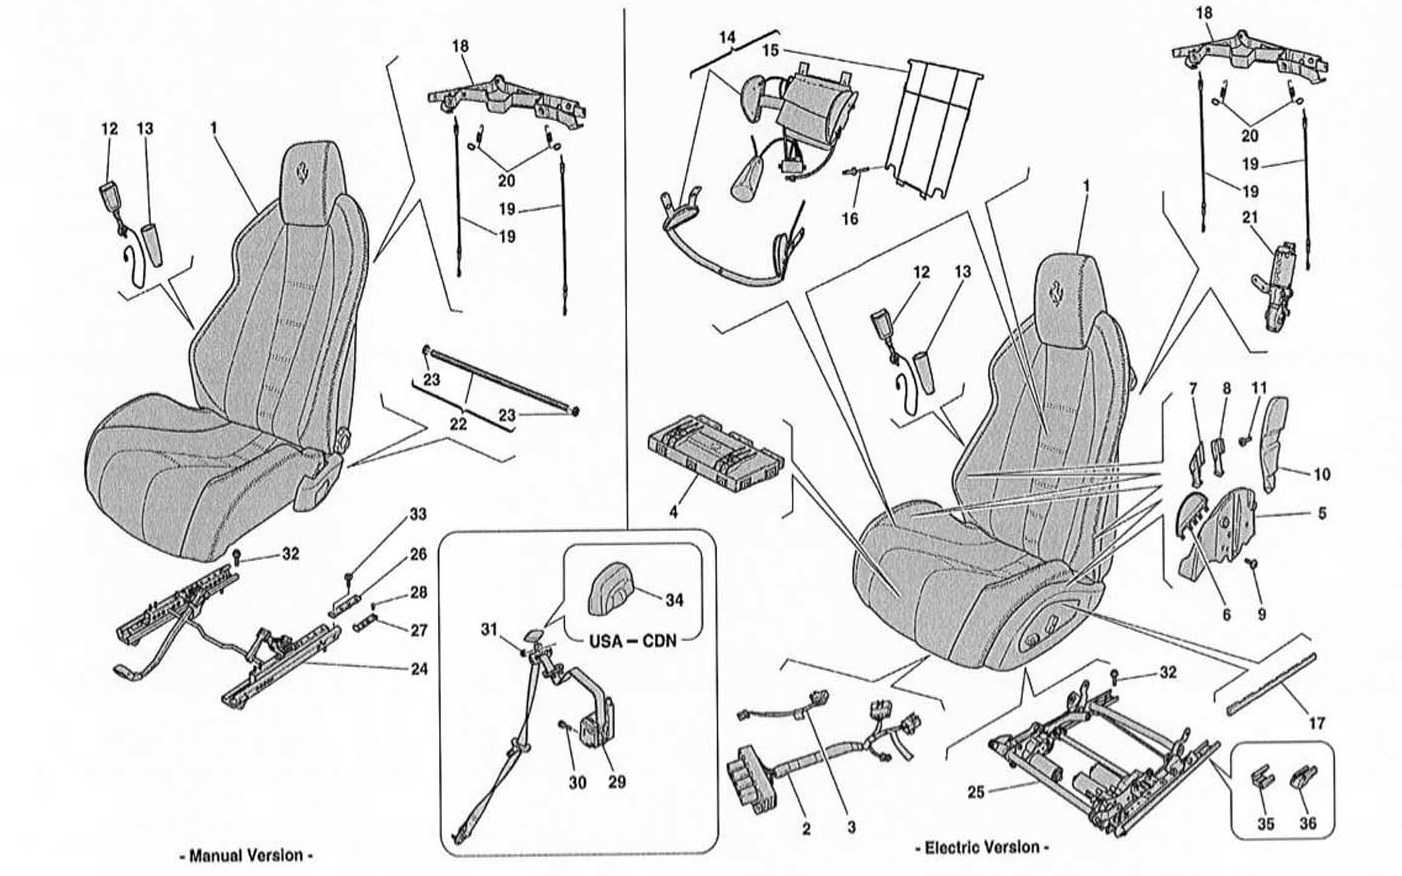 SEATS - SEAT BELTS AND GUIDES AND ADJUSTMENT